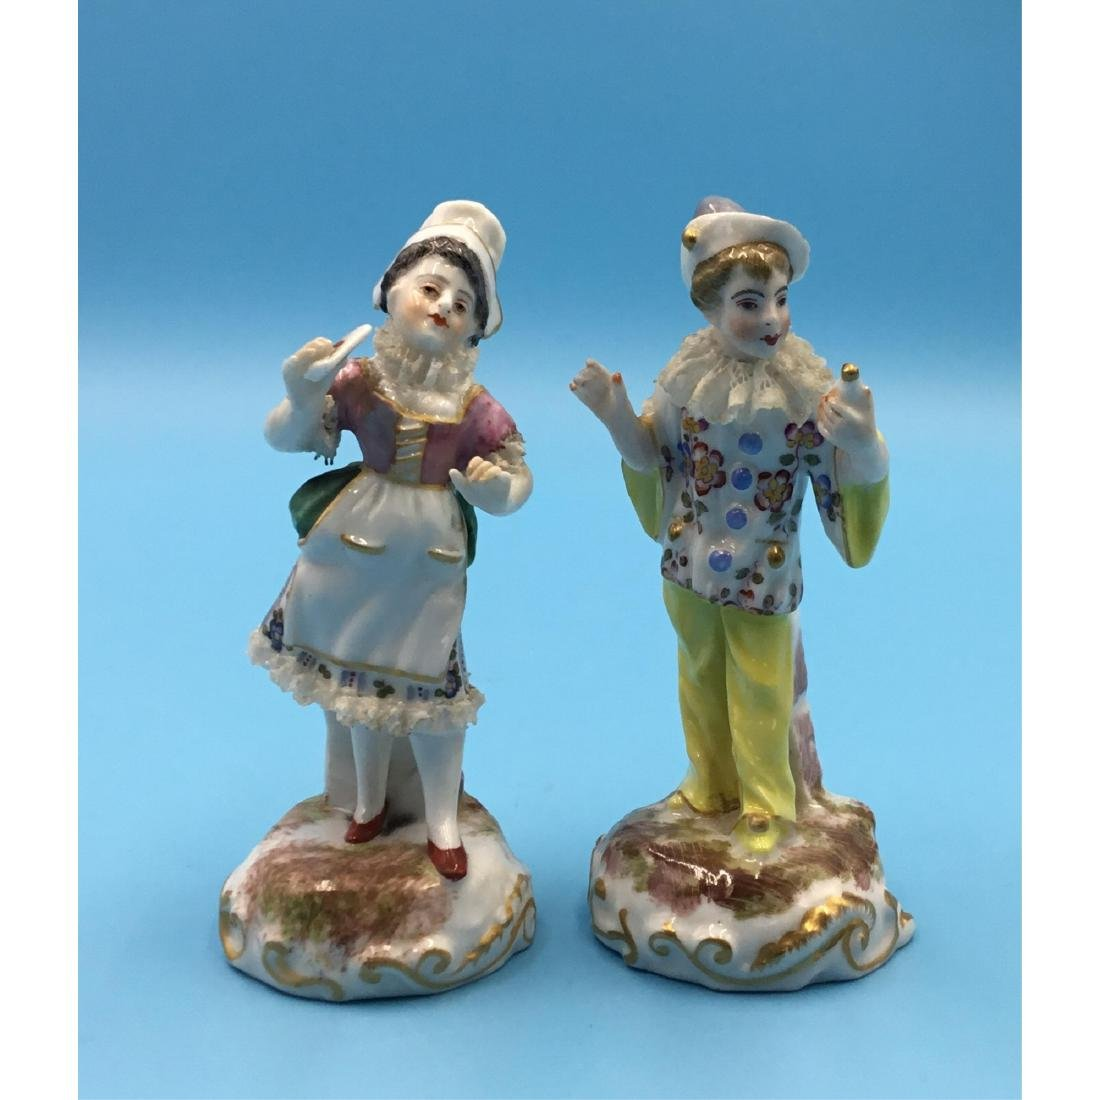 PAIR FRENCH 19TH C. MINIATURE PORCELAIN FIGURINES